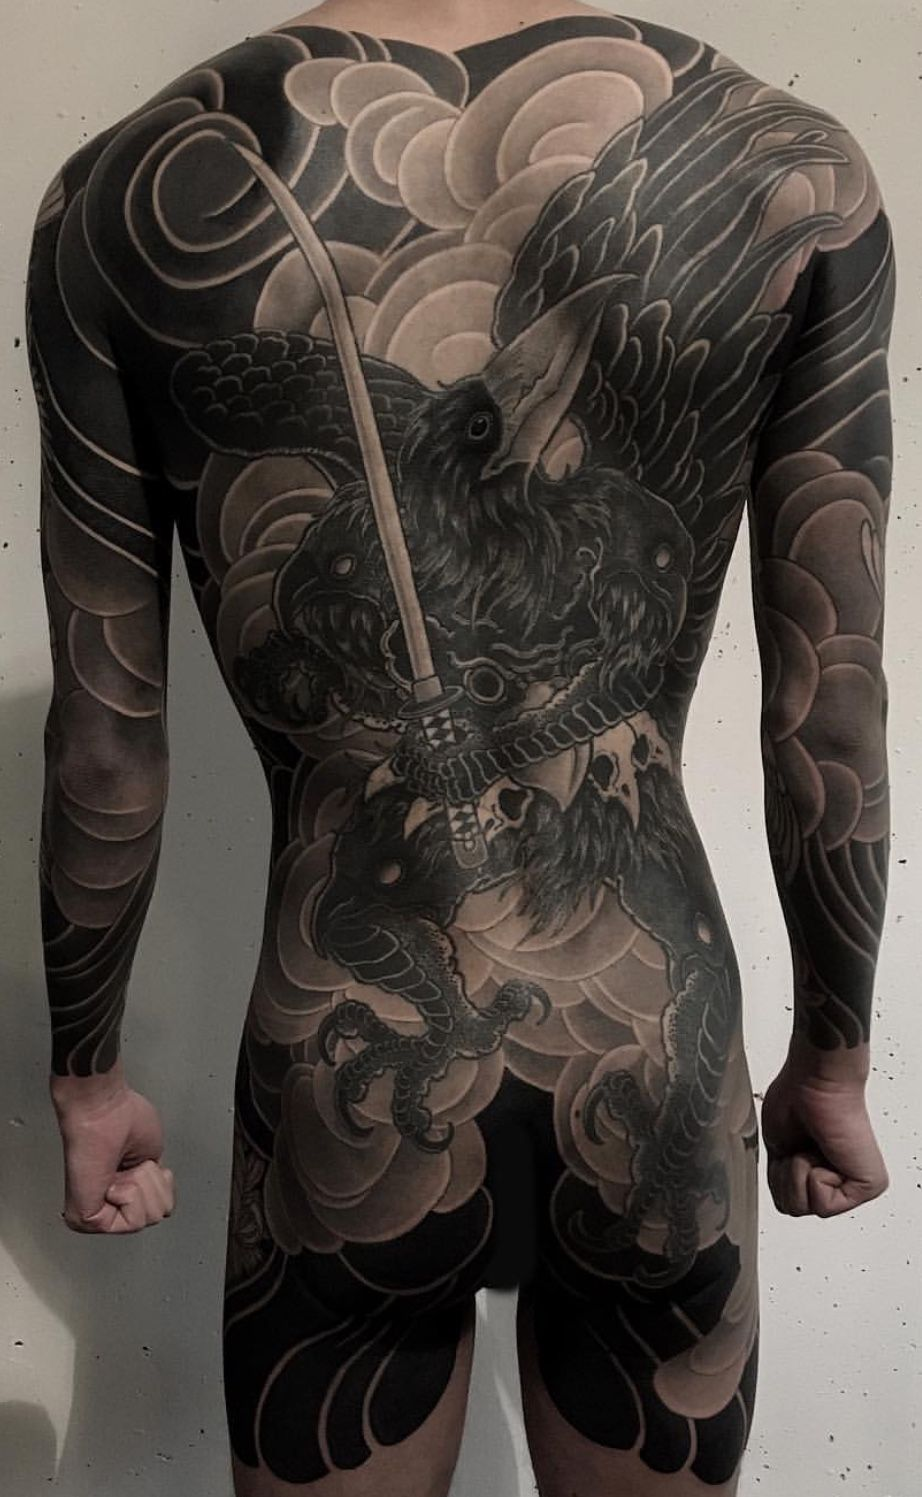 Japanese Gang Yakuza Full Body Tattoo Meanings (38)